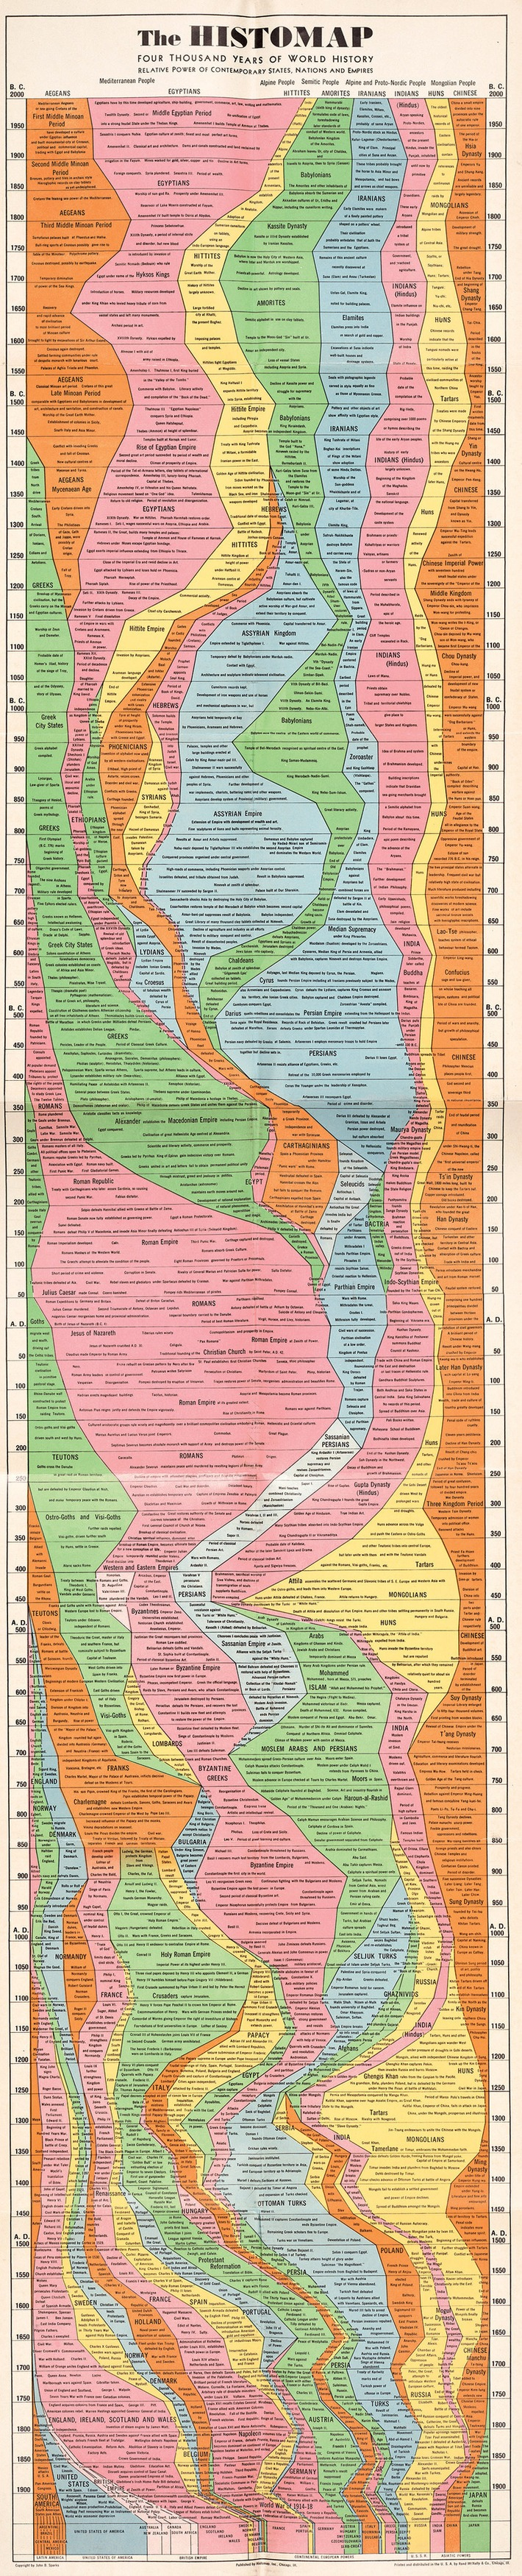 The Rise and Fall of Civilizations | Megatrends | Scoop.it